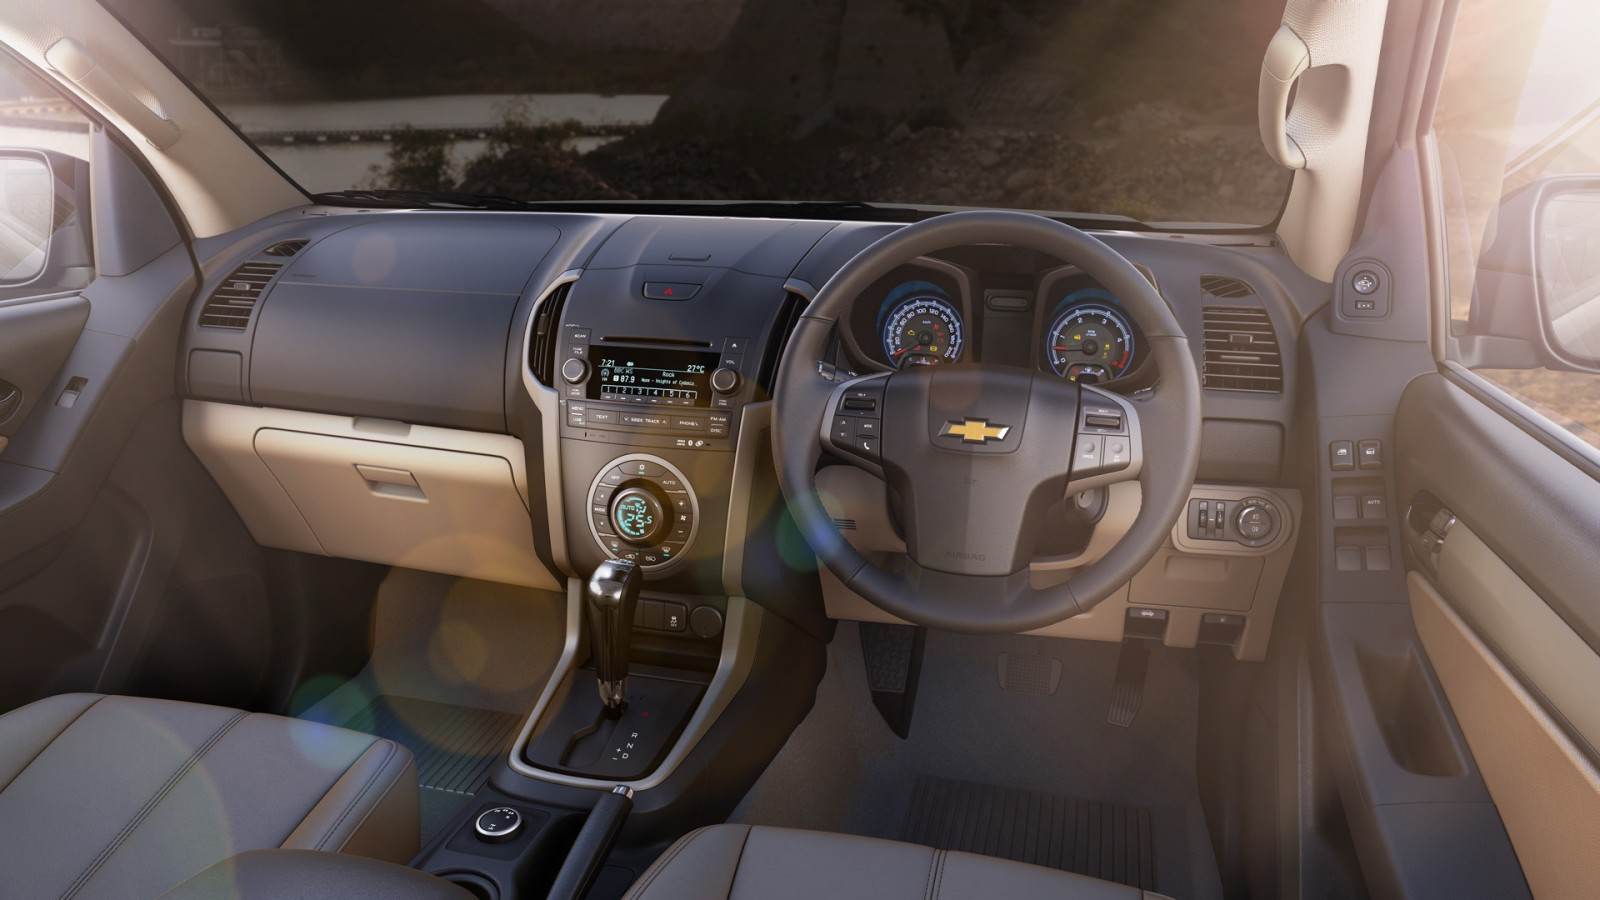 Chevrolet Trailblazer Interiors Dashboard